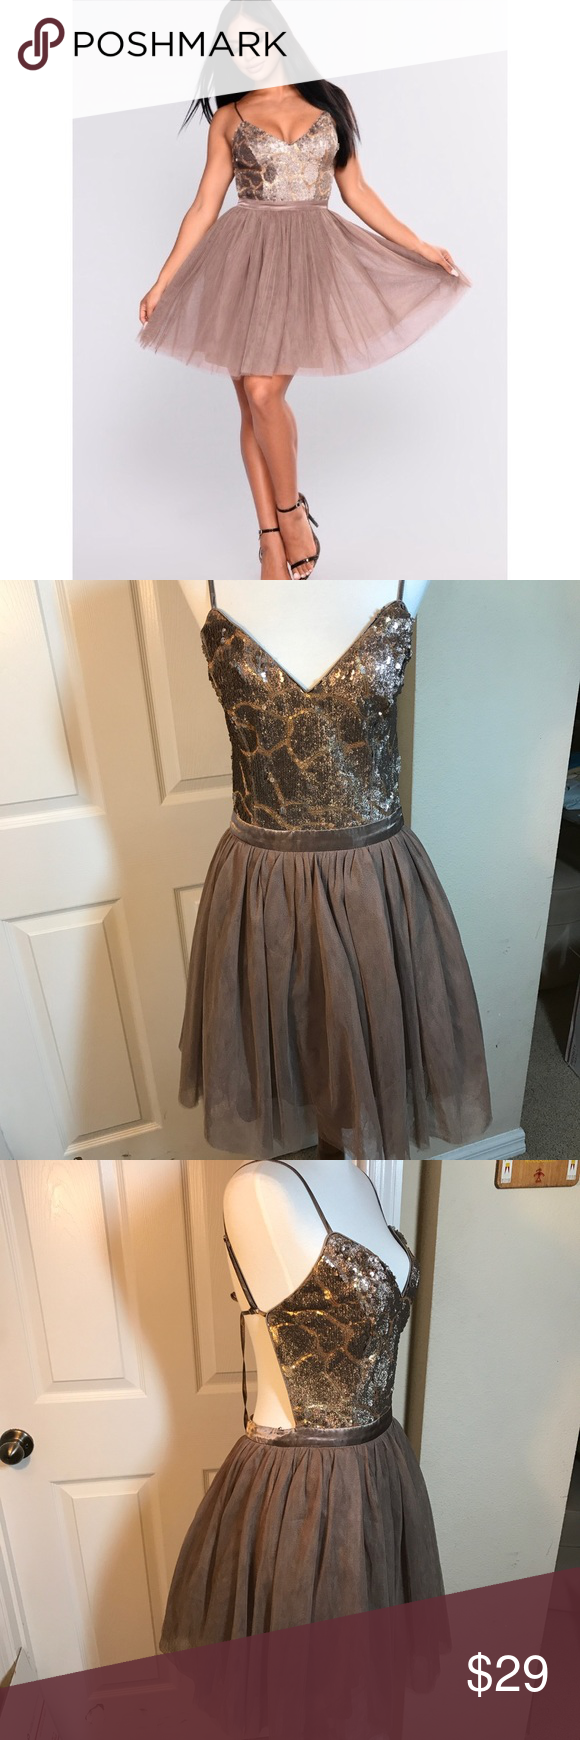 Sequin Dress Semi Formal Prom Large Cocktail NWT NWT